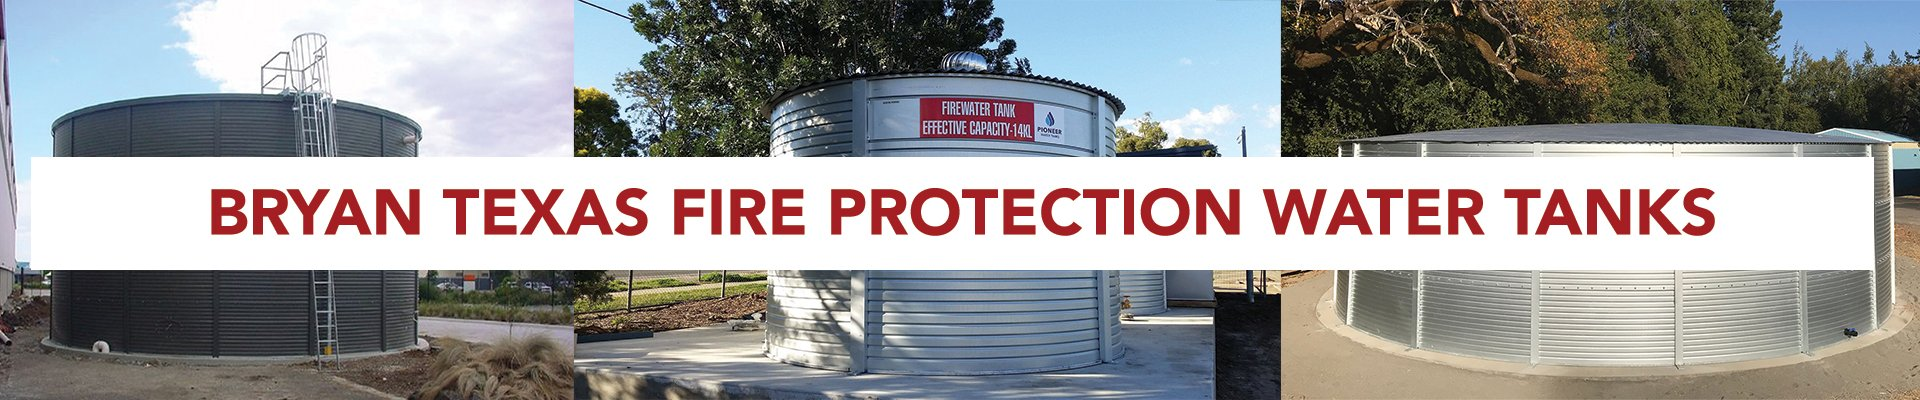 Bryan Texas fire protection water tanks